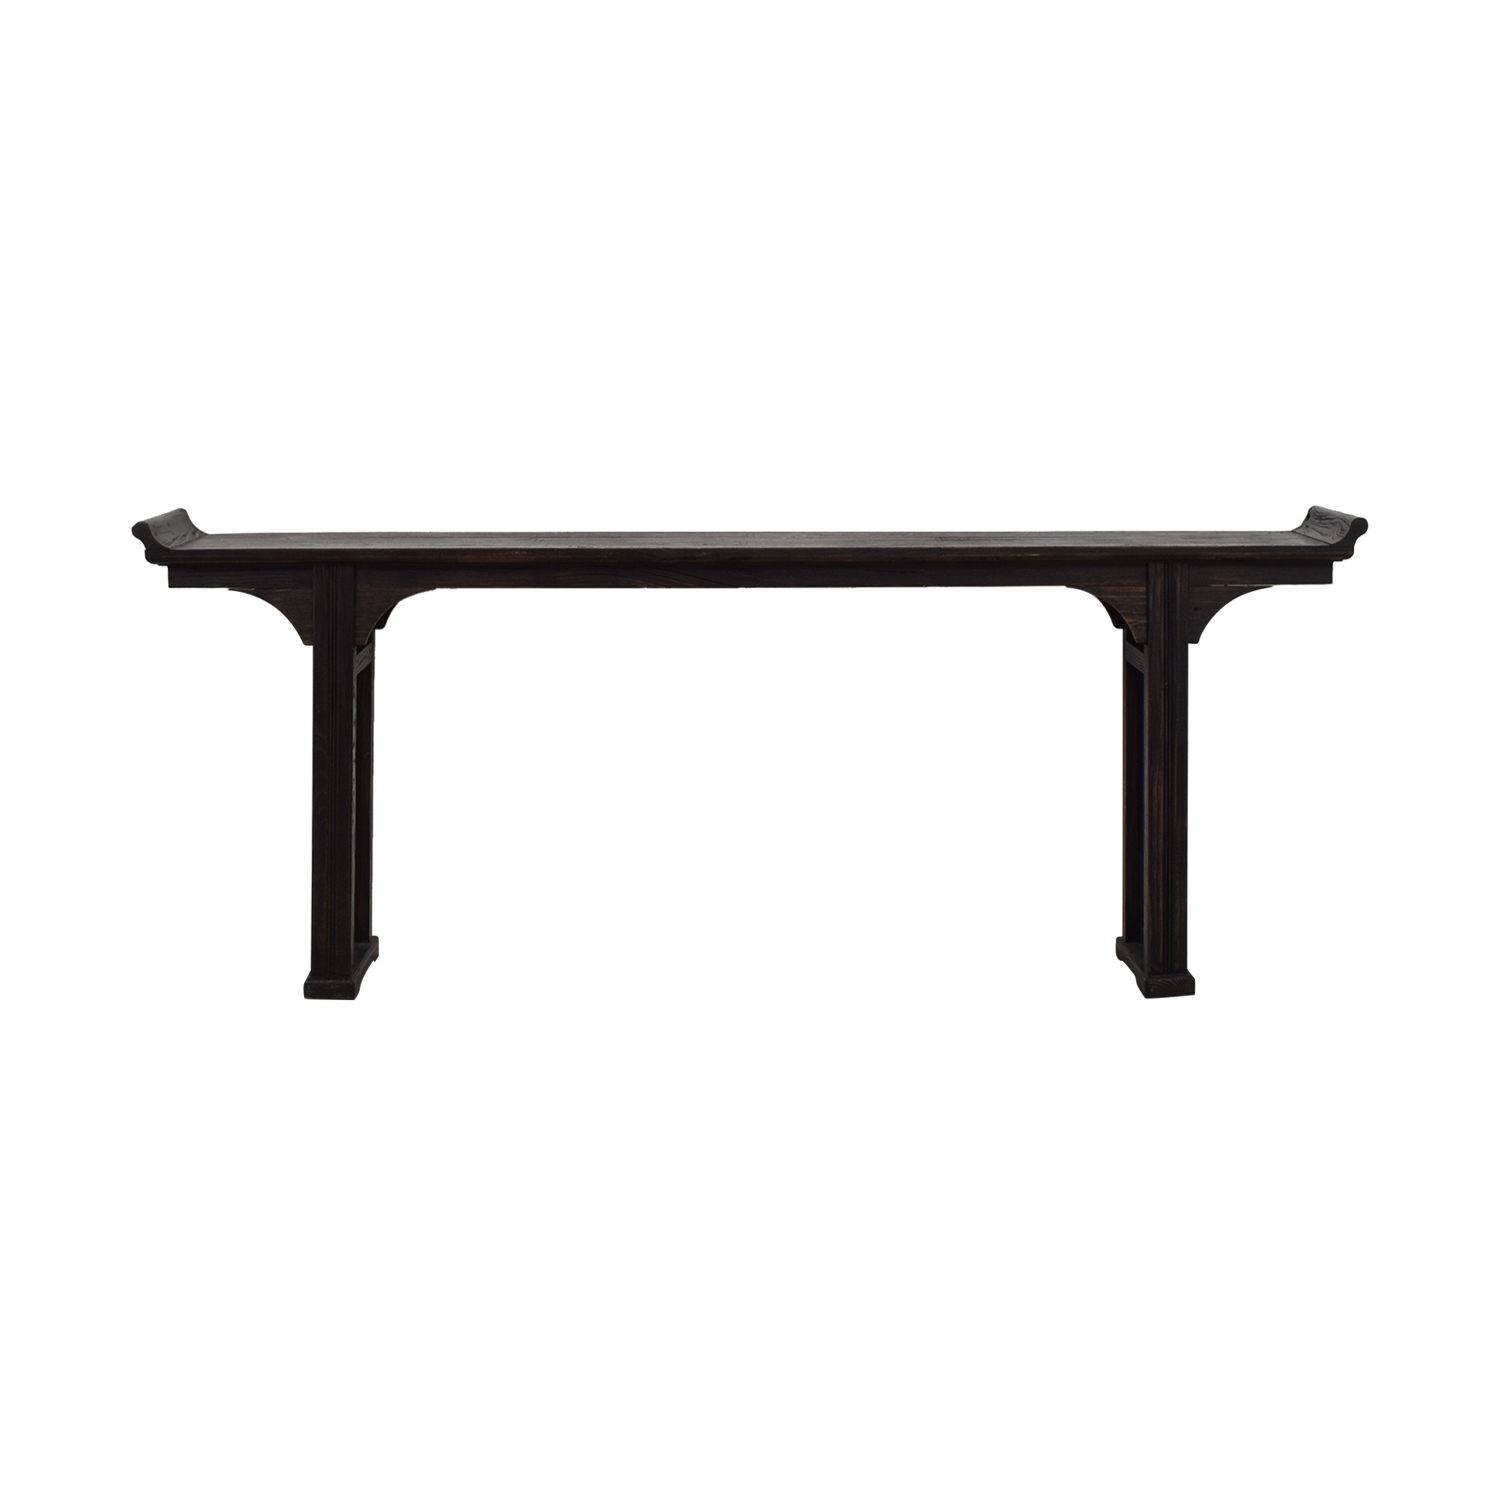 Ballard Designs Ballard Designs Dark Brown Wood Console Table nj